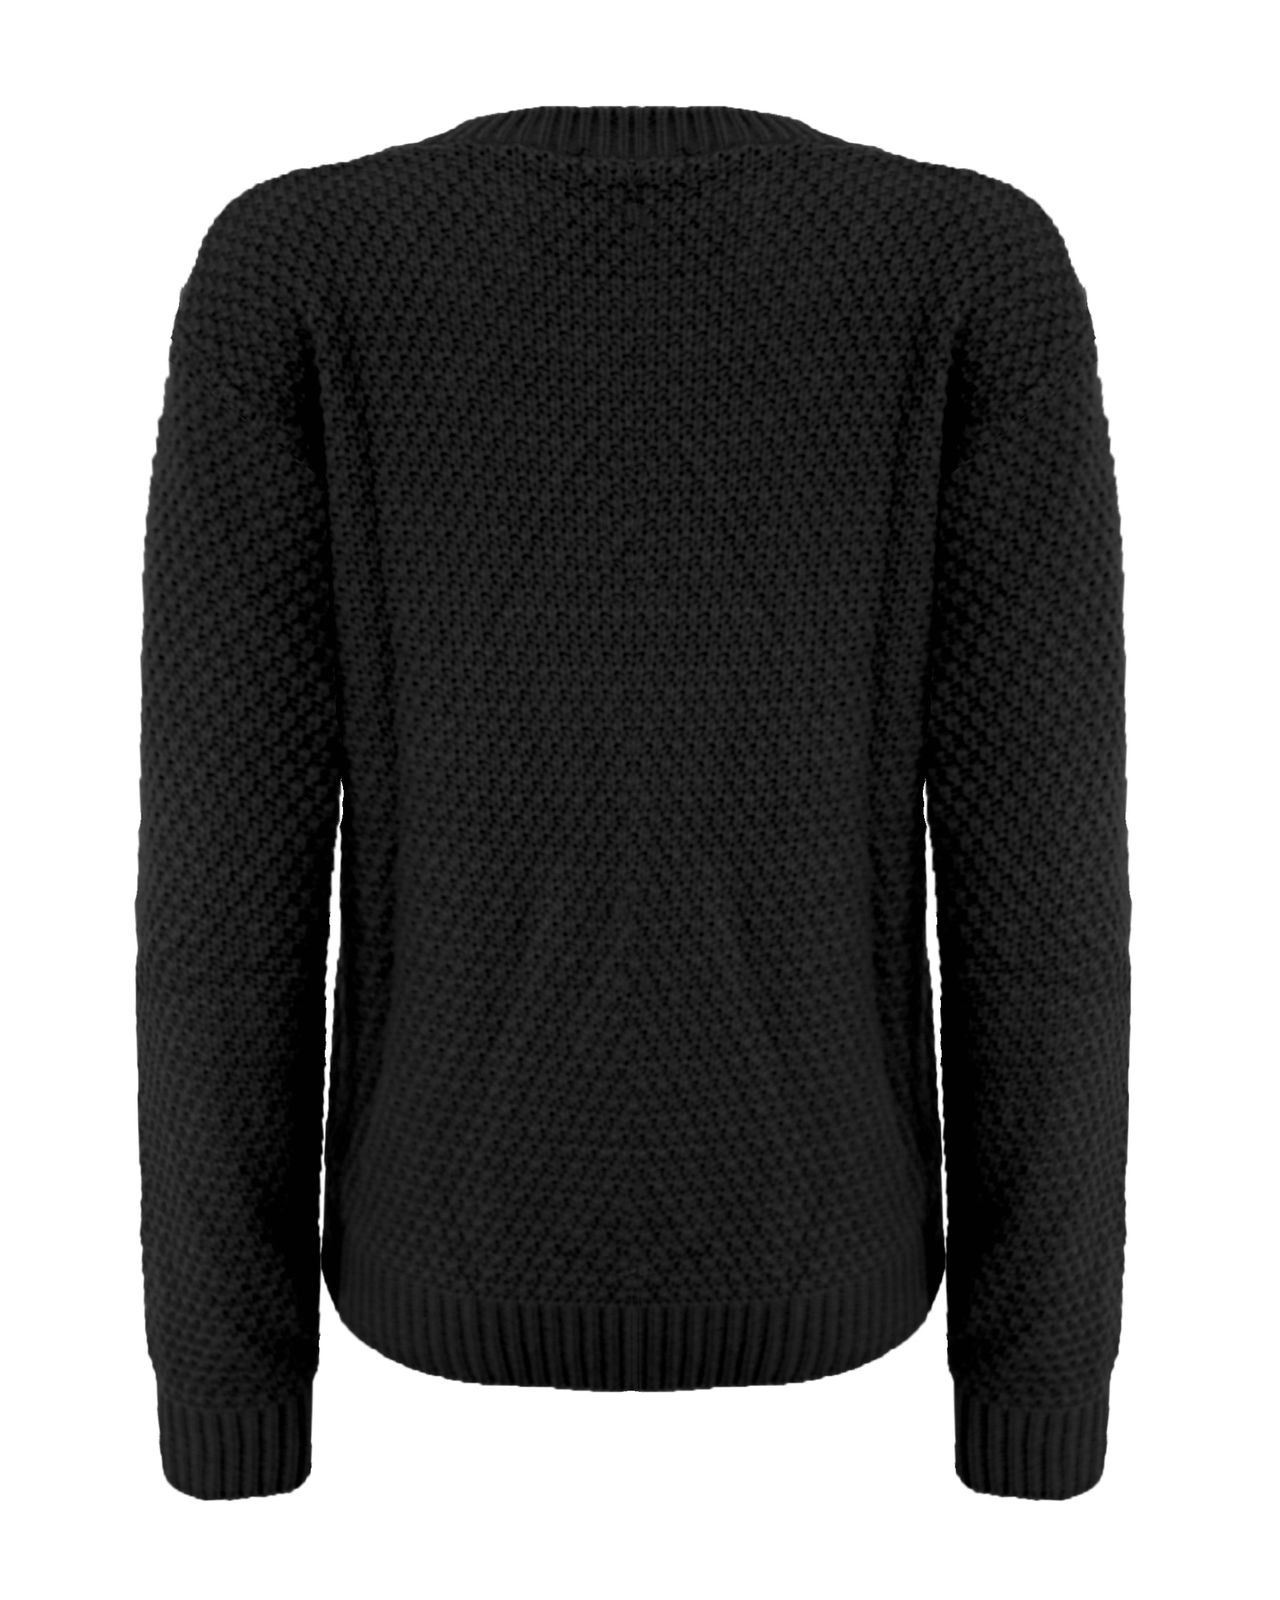 New La S Women Knitted Crew Neck Long Sleeve Cable Knit Womens Chunky Cable Knit Sweater Of Luxury 45 Models Womens Chunky Cable Knit Sweater